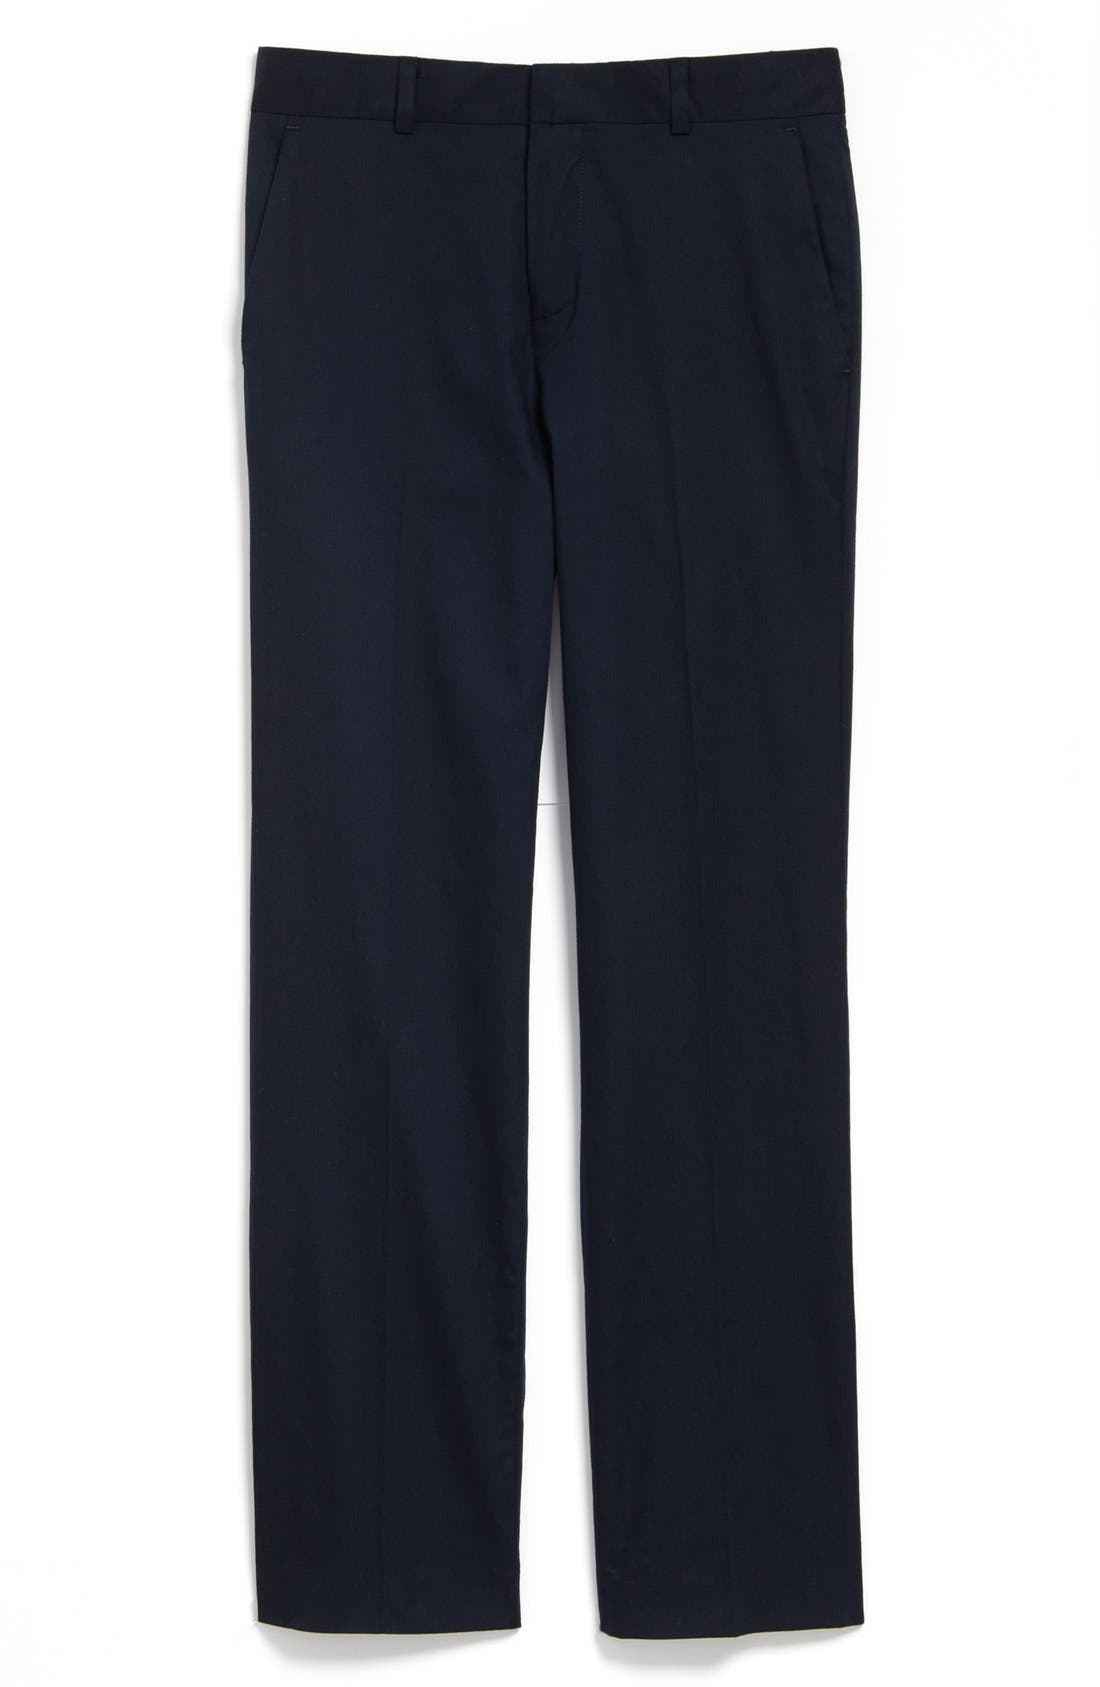 Alternate Image 1 Selected - C2 by Calibrate 'Sterling' Dress Pants